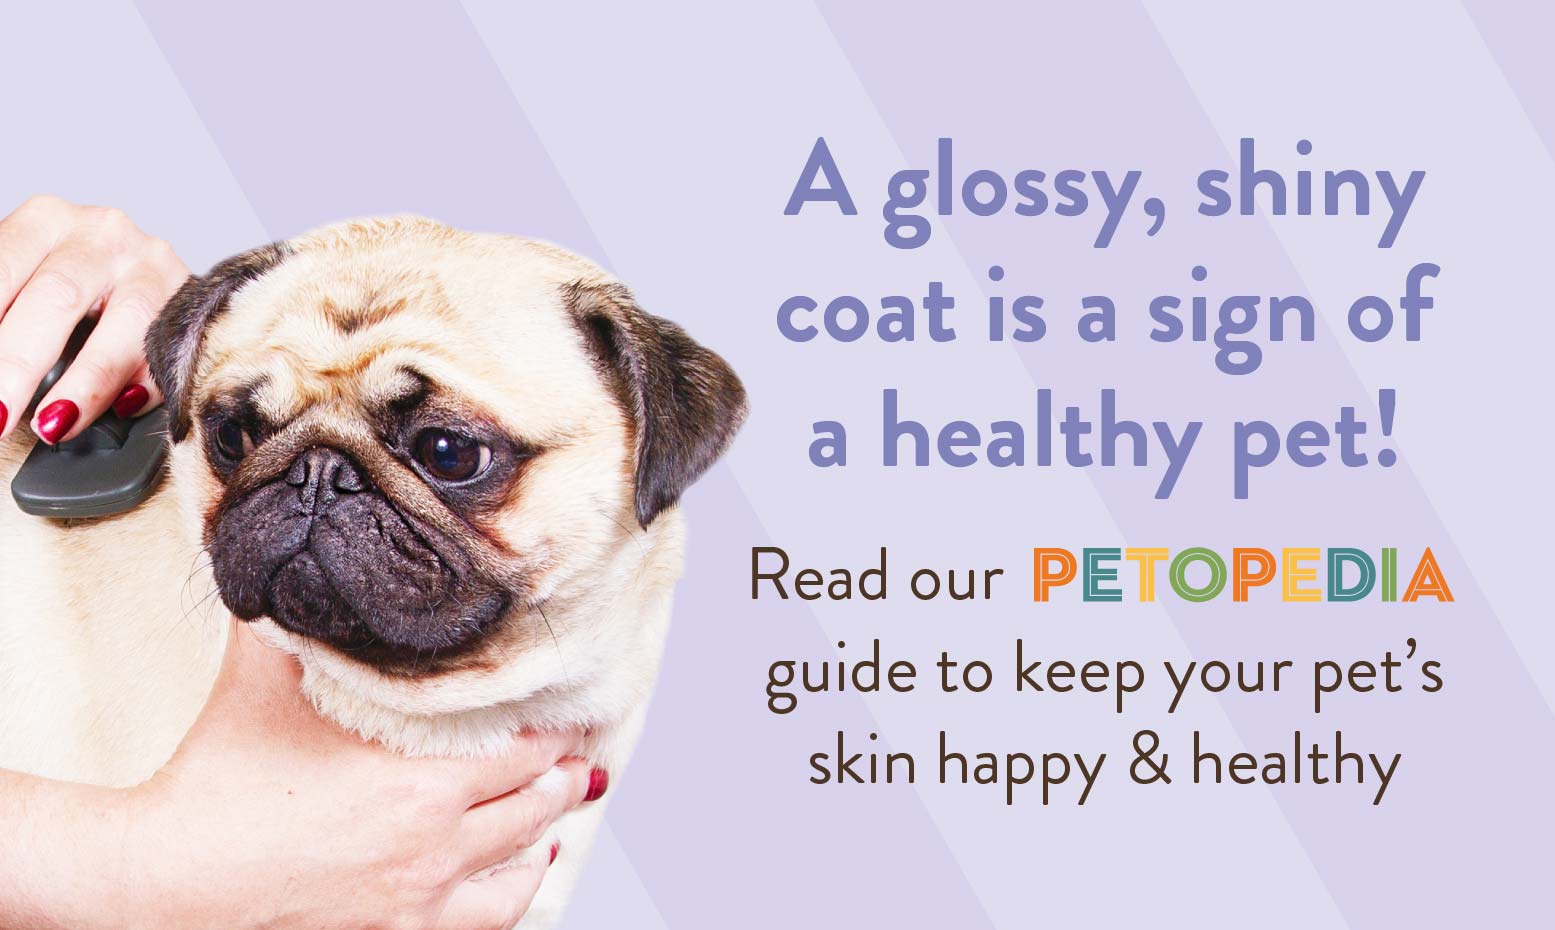 A glossy, shiny coat is a sign of a healthy pet! Read our PETOPEDIA guide to keep your pet's skin happy & healthy